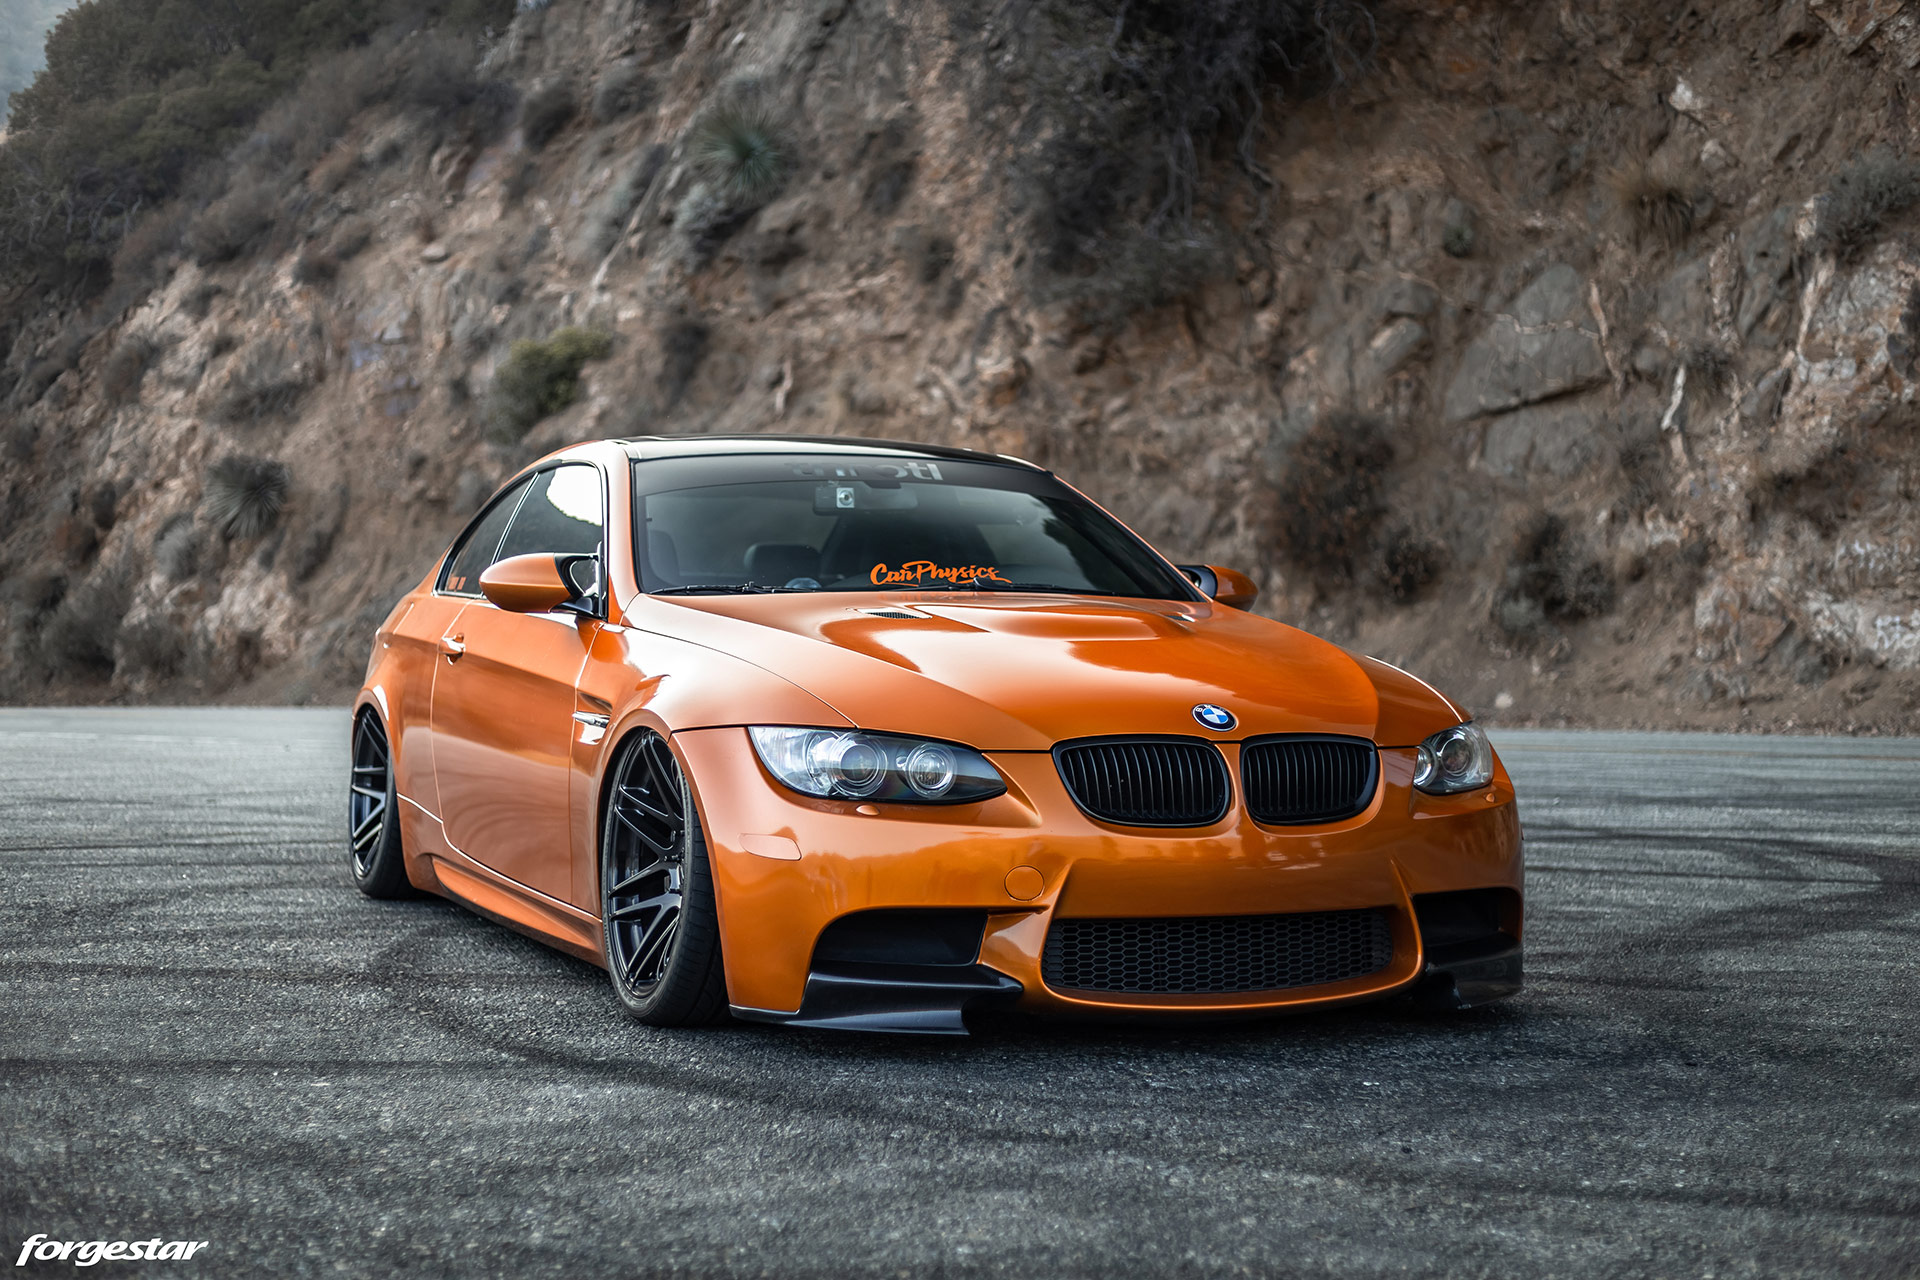 orange-metallic-bmw-e92-m3-black-concave-forgestar-f14-borla-exhaust-csl-trunk-d.jpg